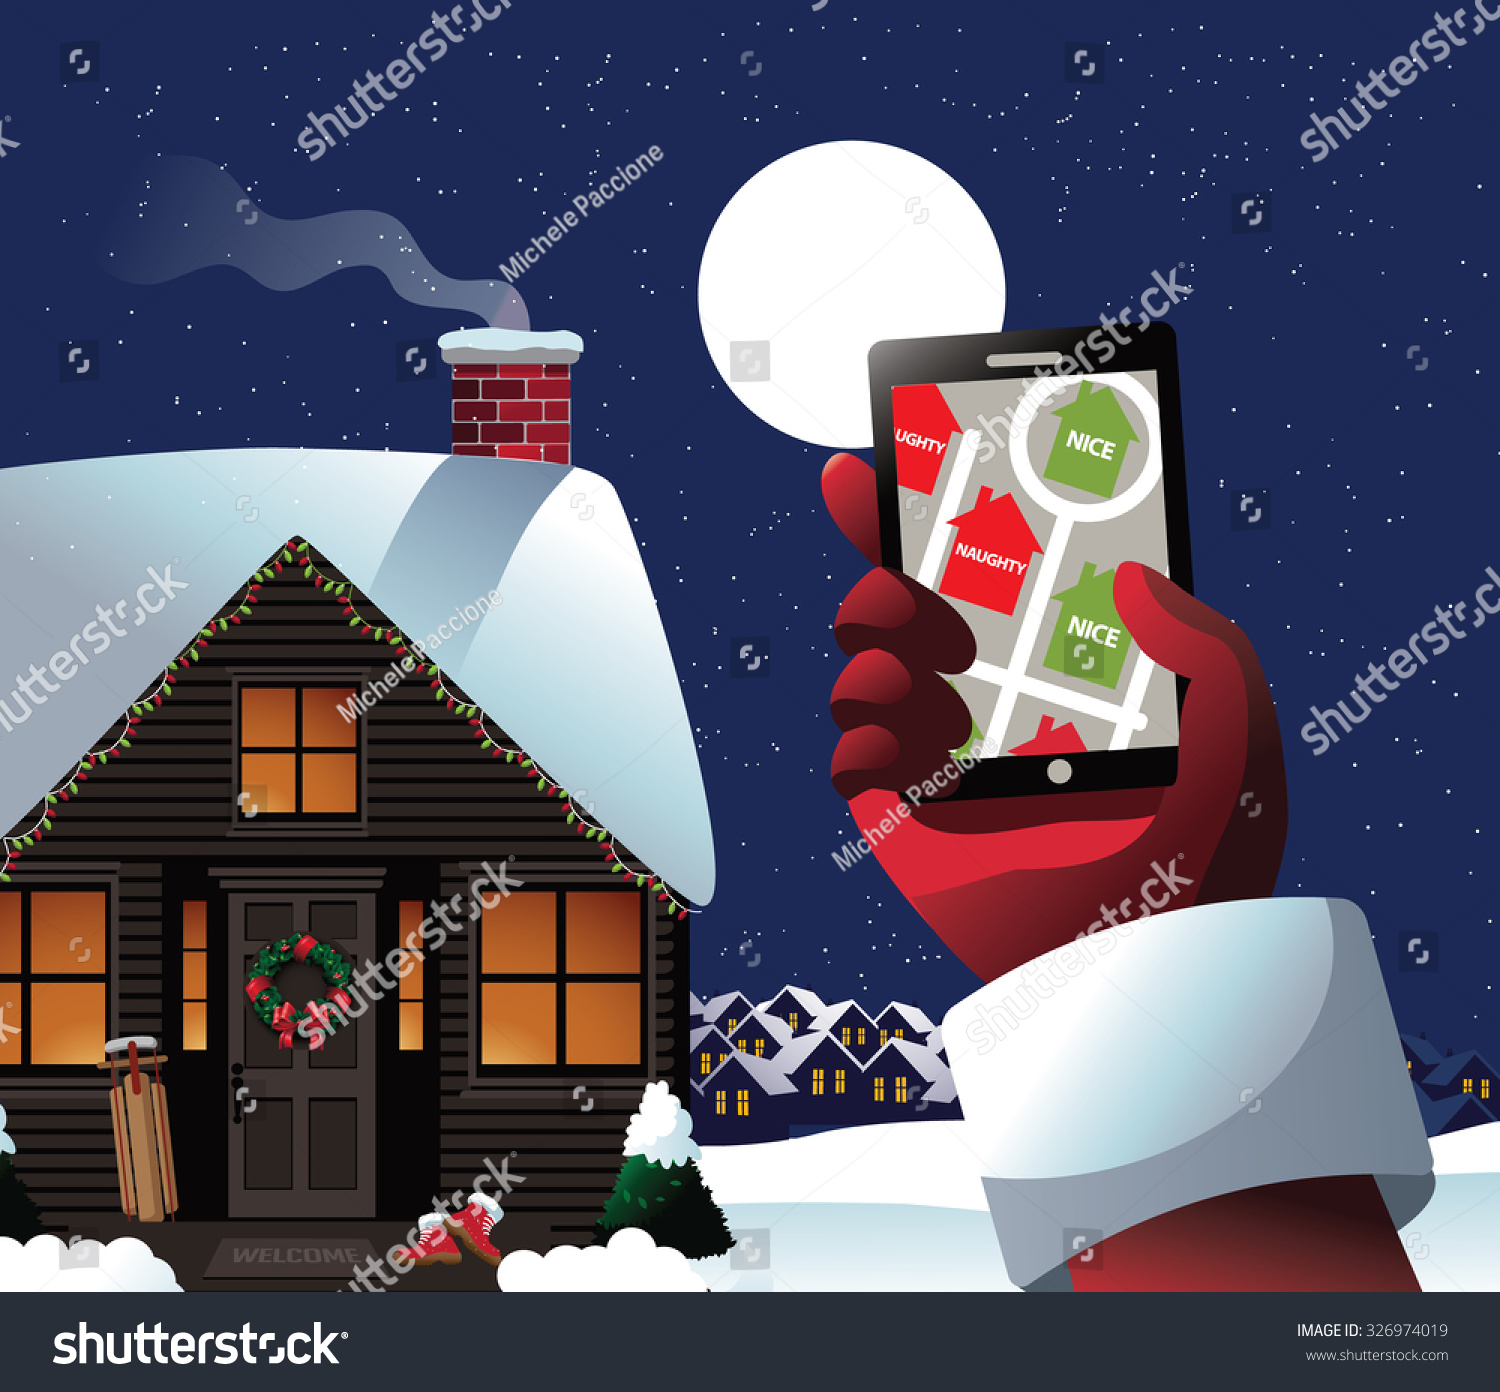 Santa checks his gps see whos stock illustration 326974019 santa checks his gps to see whos naughty or nice royalty free stock illustration for m4hsunfo